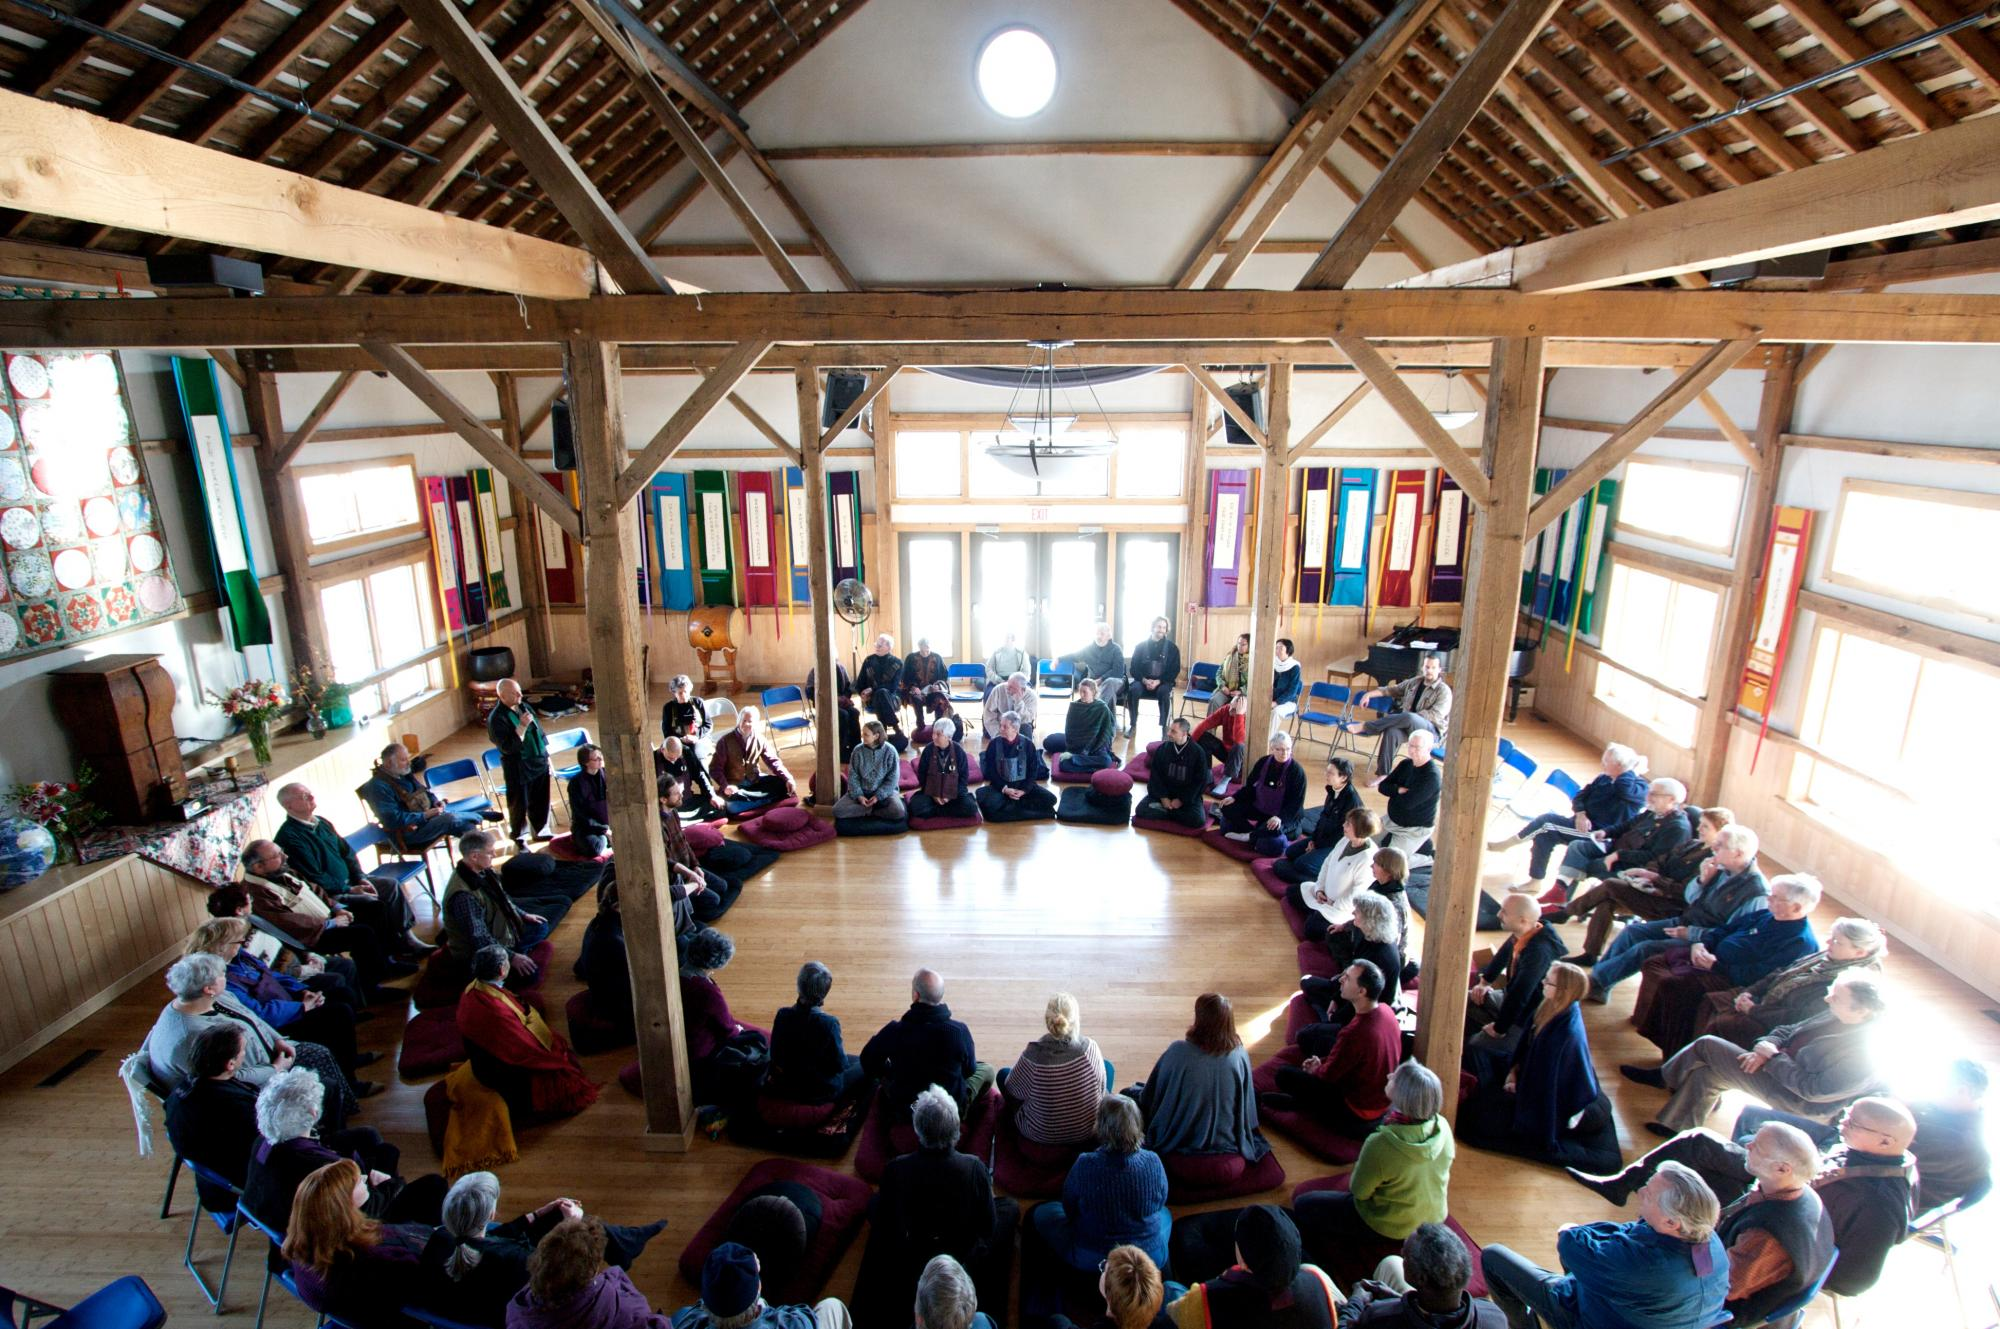 The Zen Peacemakers Annual Meeting in The HOOP (The House of One People) as they called the barn/conference center. We will keep that name, it is nice.